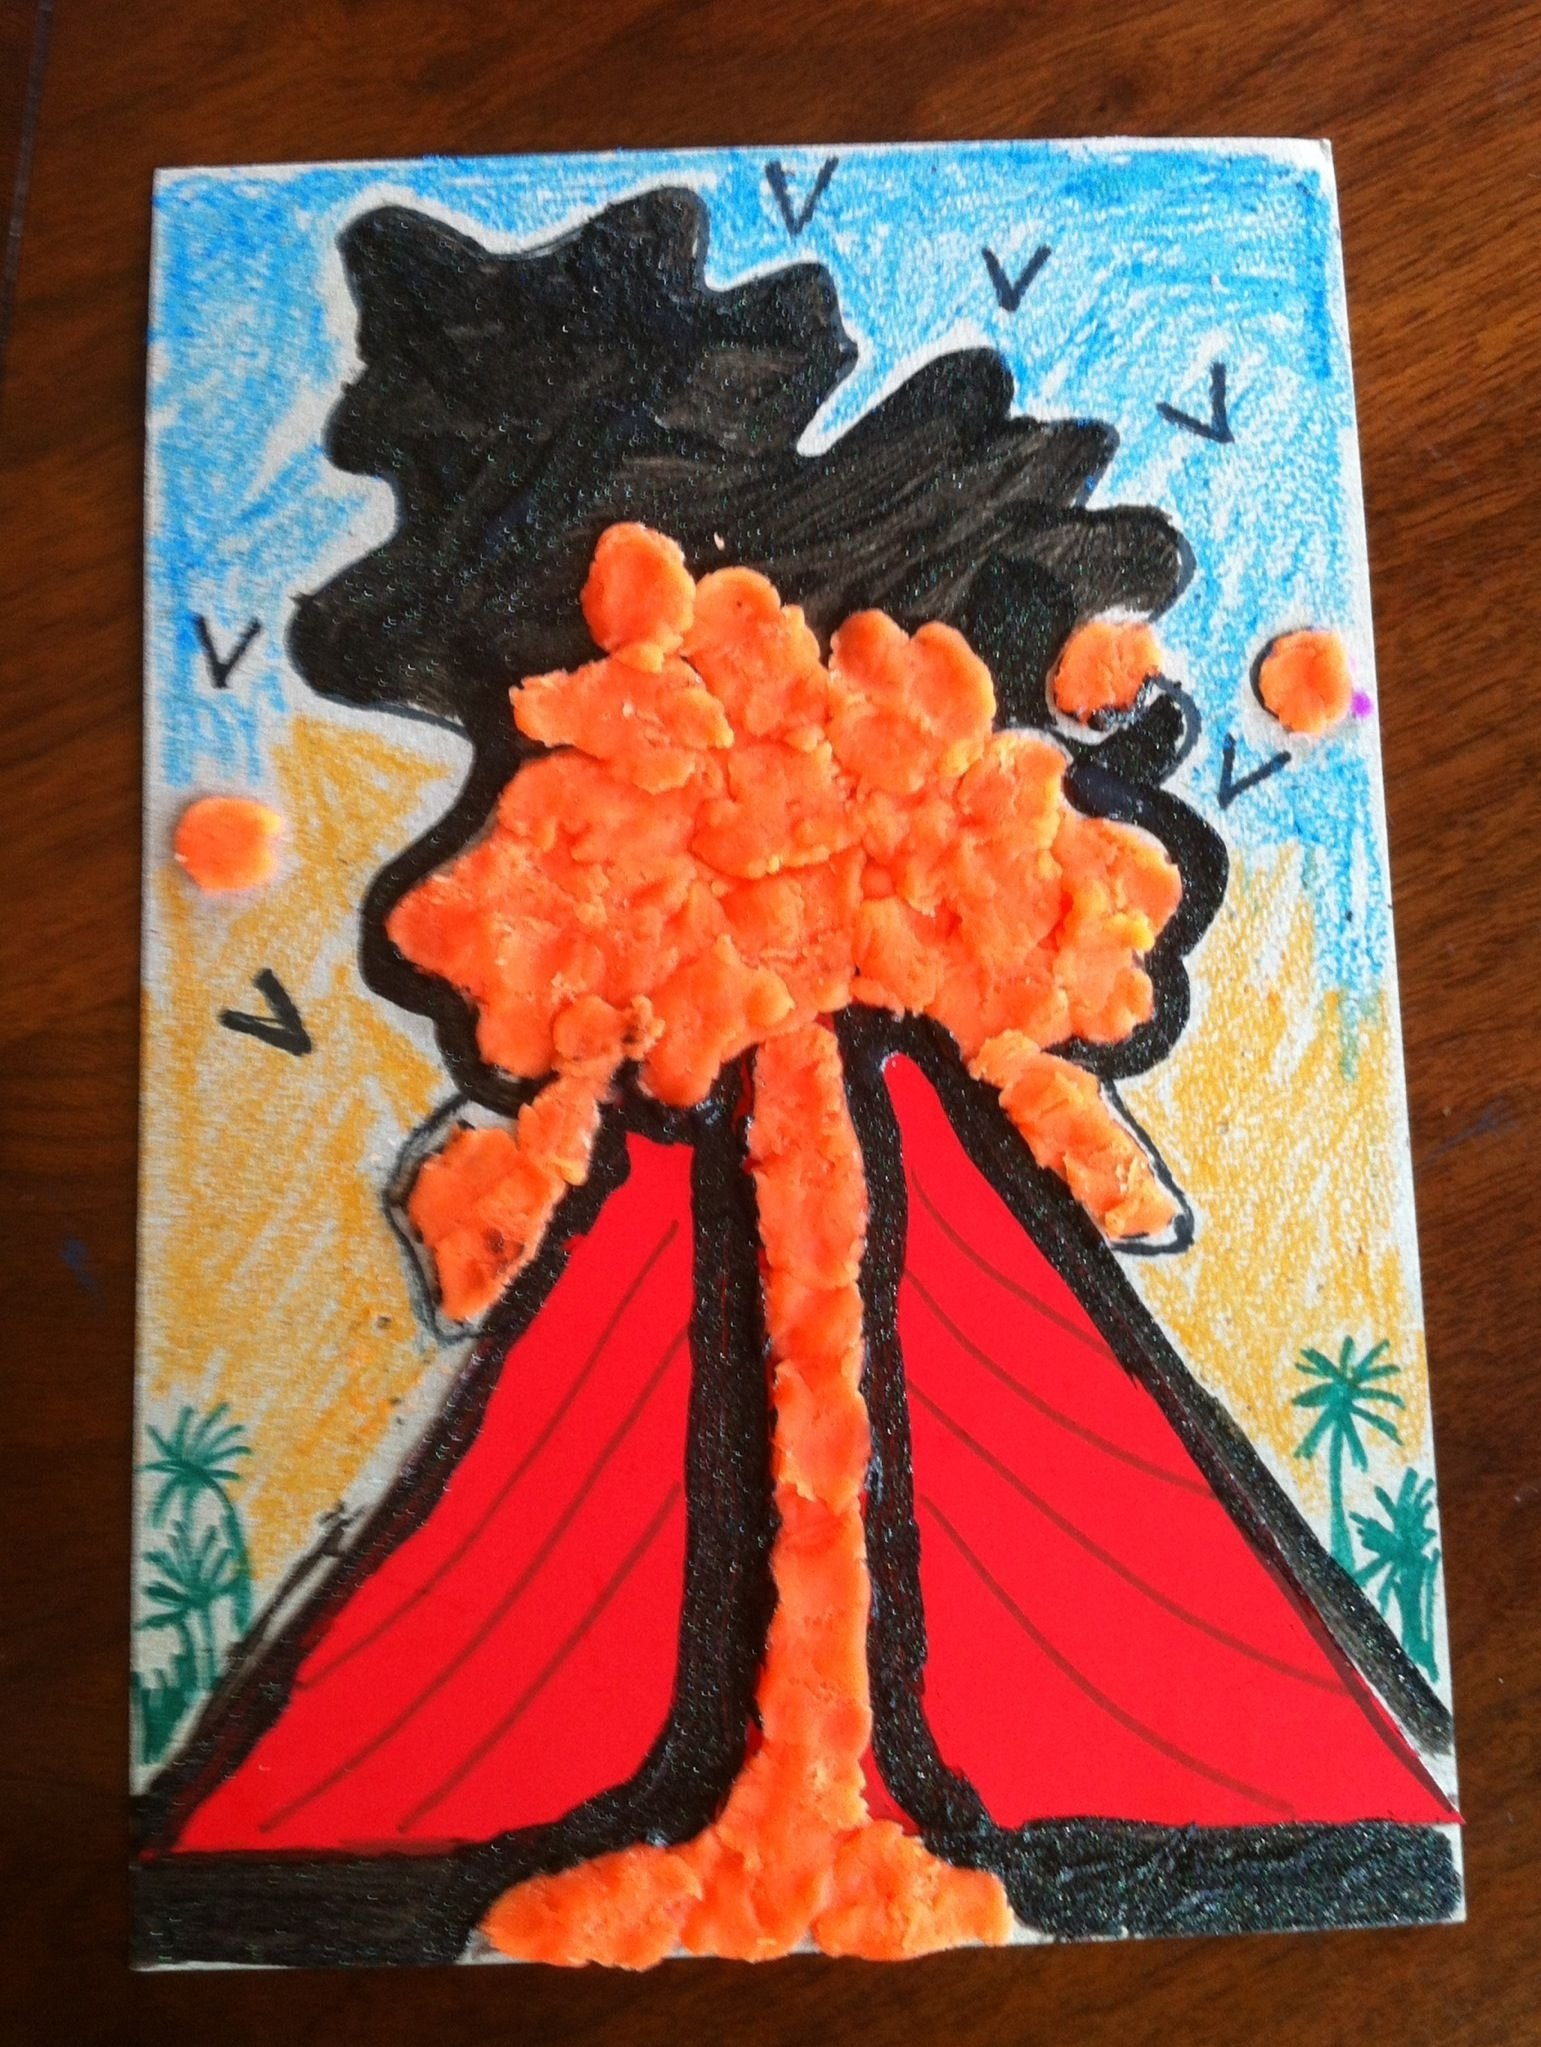 10 Amazing Show And Tell Ideas For Kids show and tell ideas for kids letter v for volcano show and tell 2020